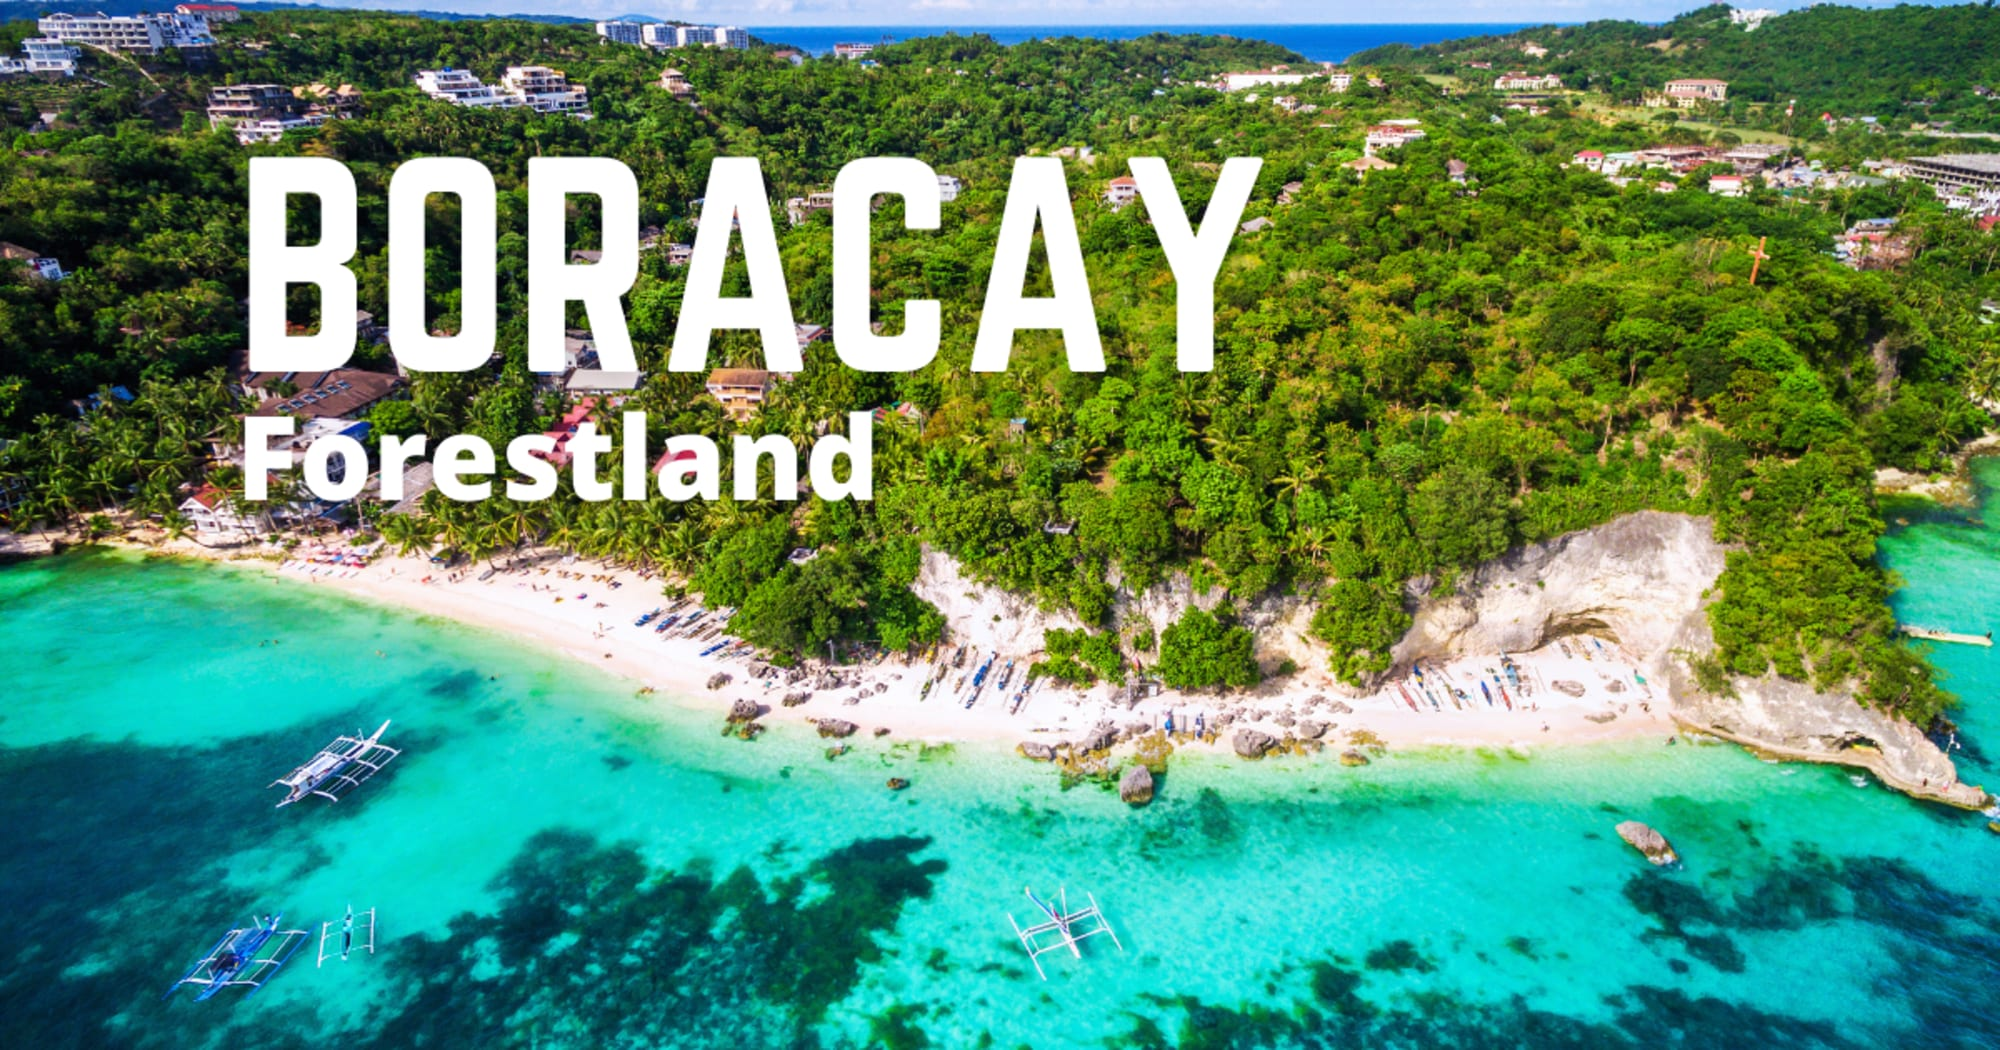 Those residing in the Forestland of Boracay Island must vacate now or else the NBI will arrest them -BIATF